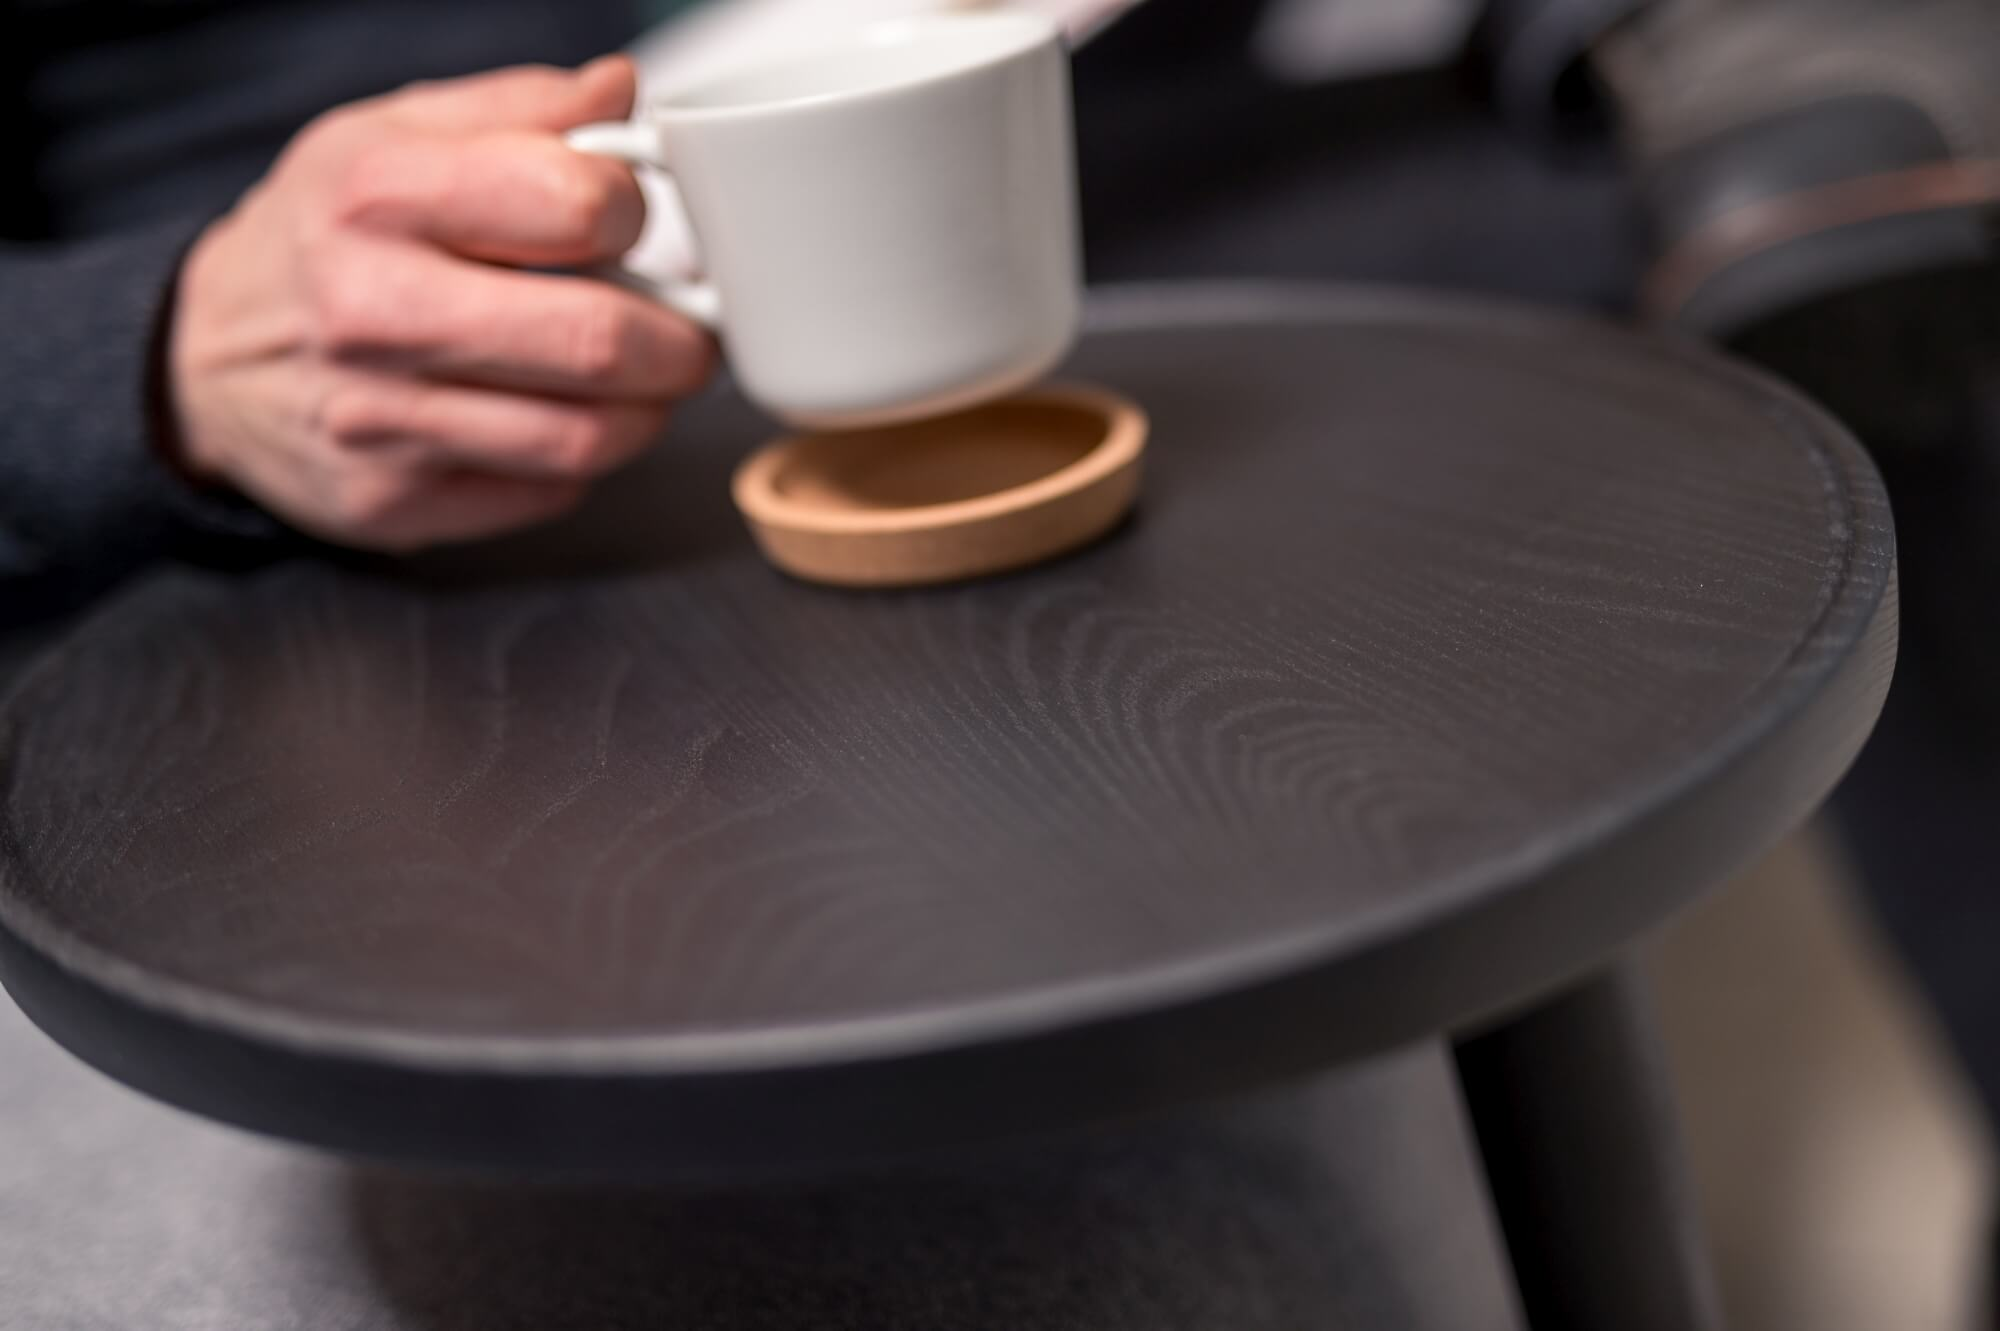 Ash coffee tray with a man sitting a coffee mug down on it.